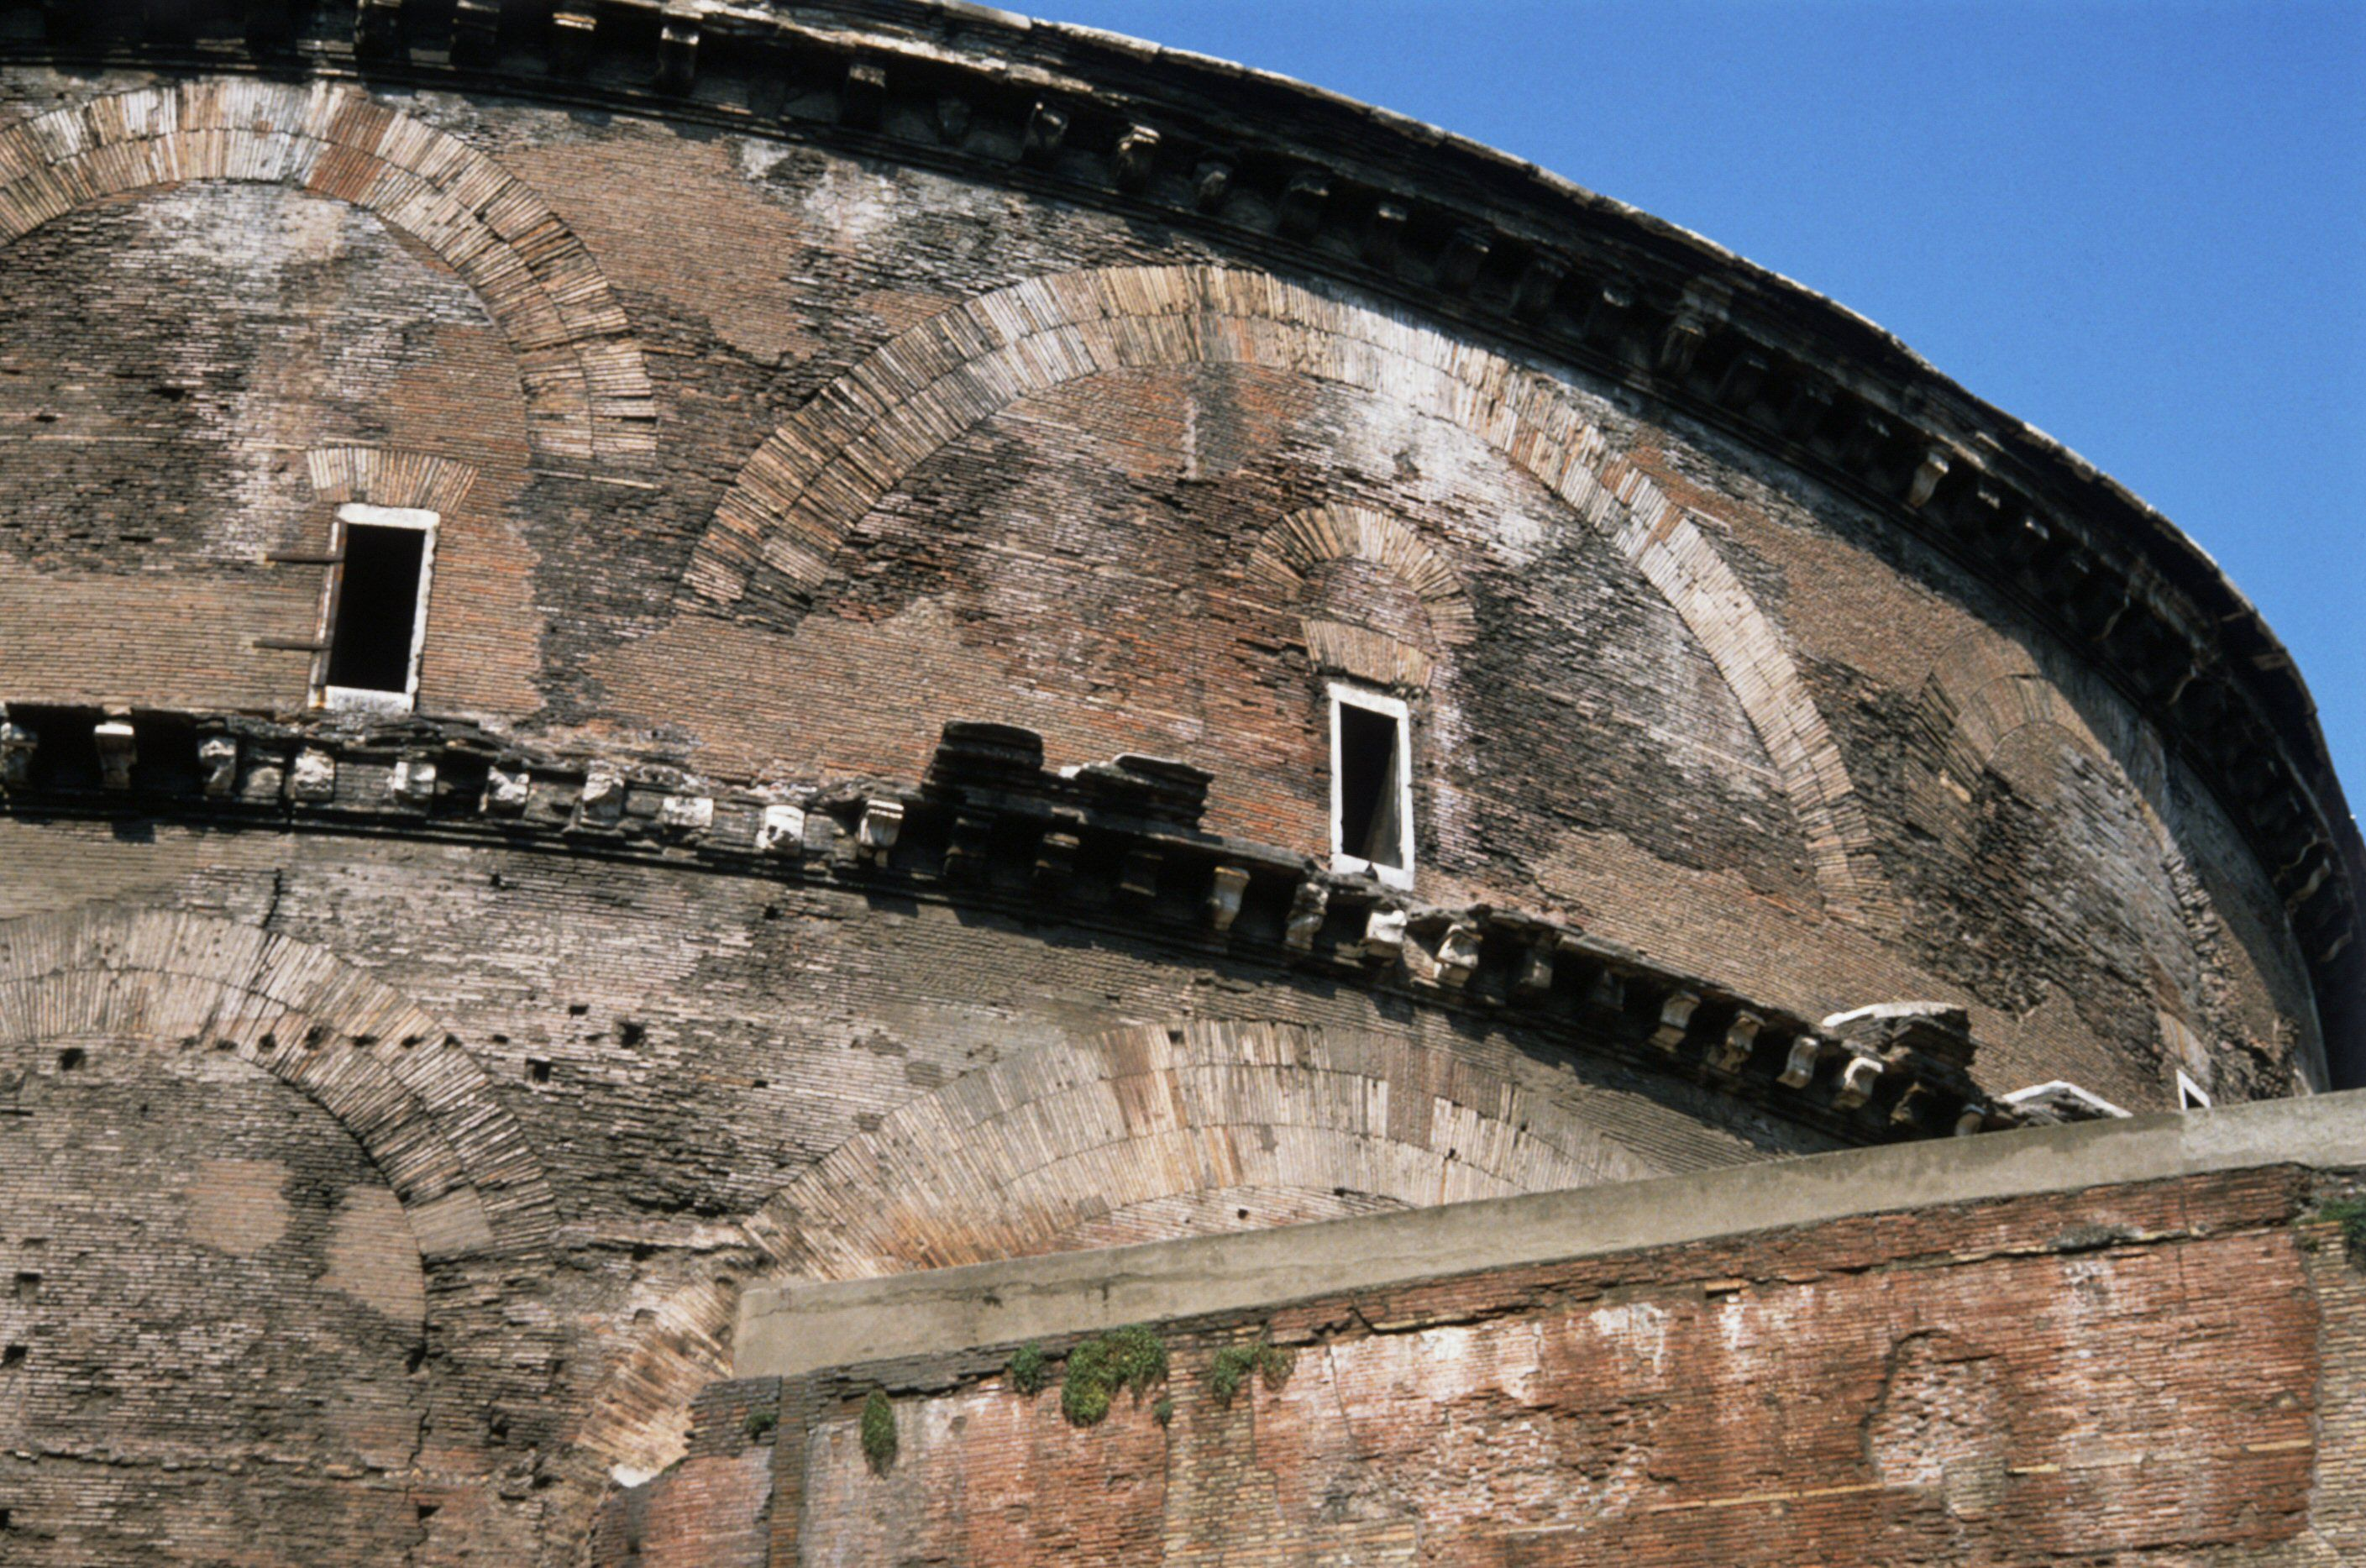 noticeable brick-looking arches built into the curving exterior wall of the dome room